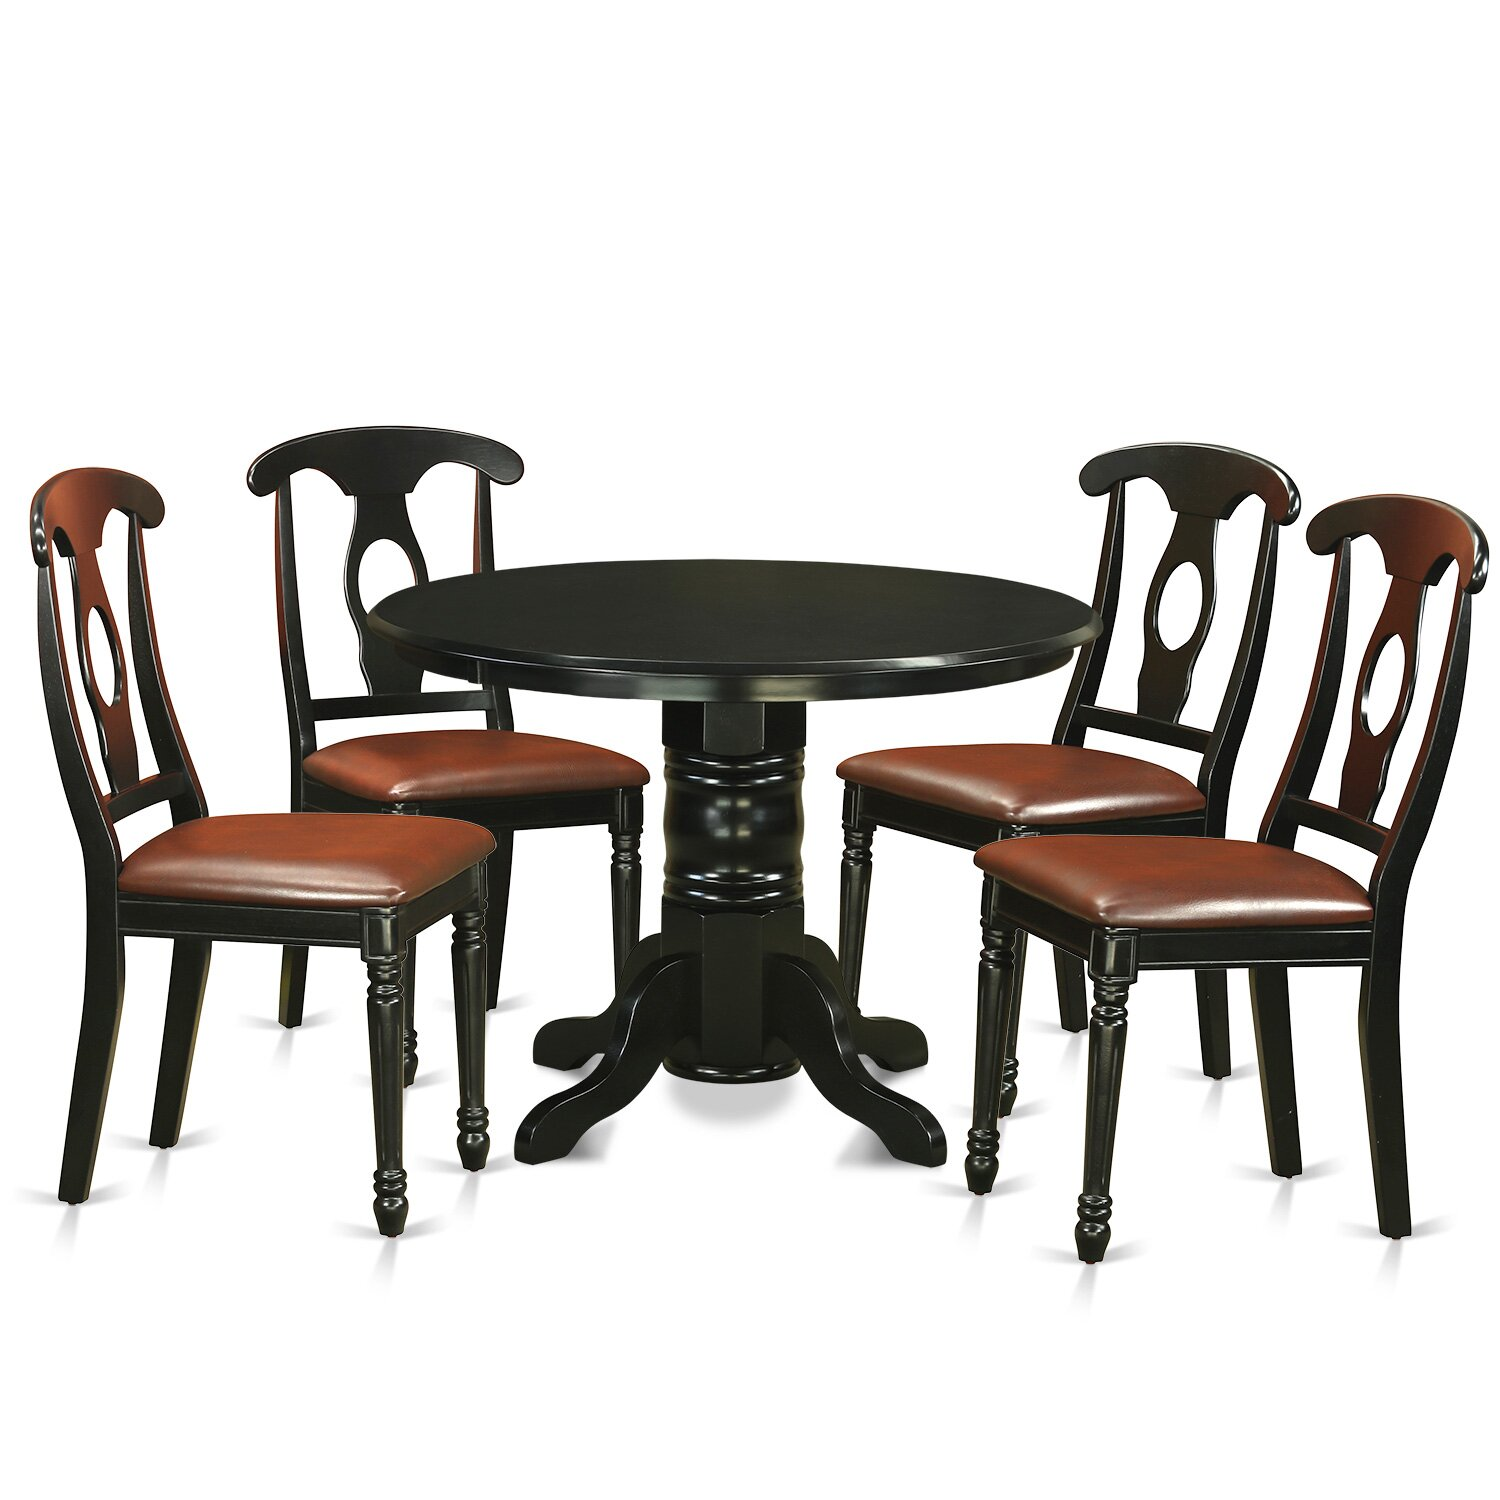 East west shelton 5 piece dining set reviews wayfair for 5 piece dining room sets